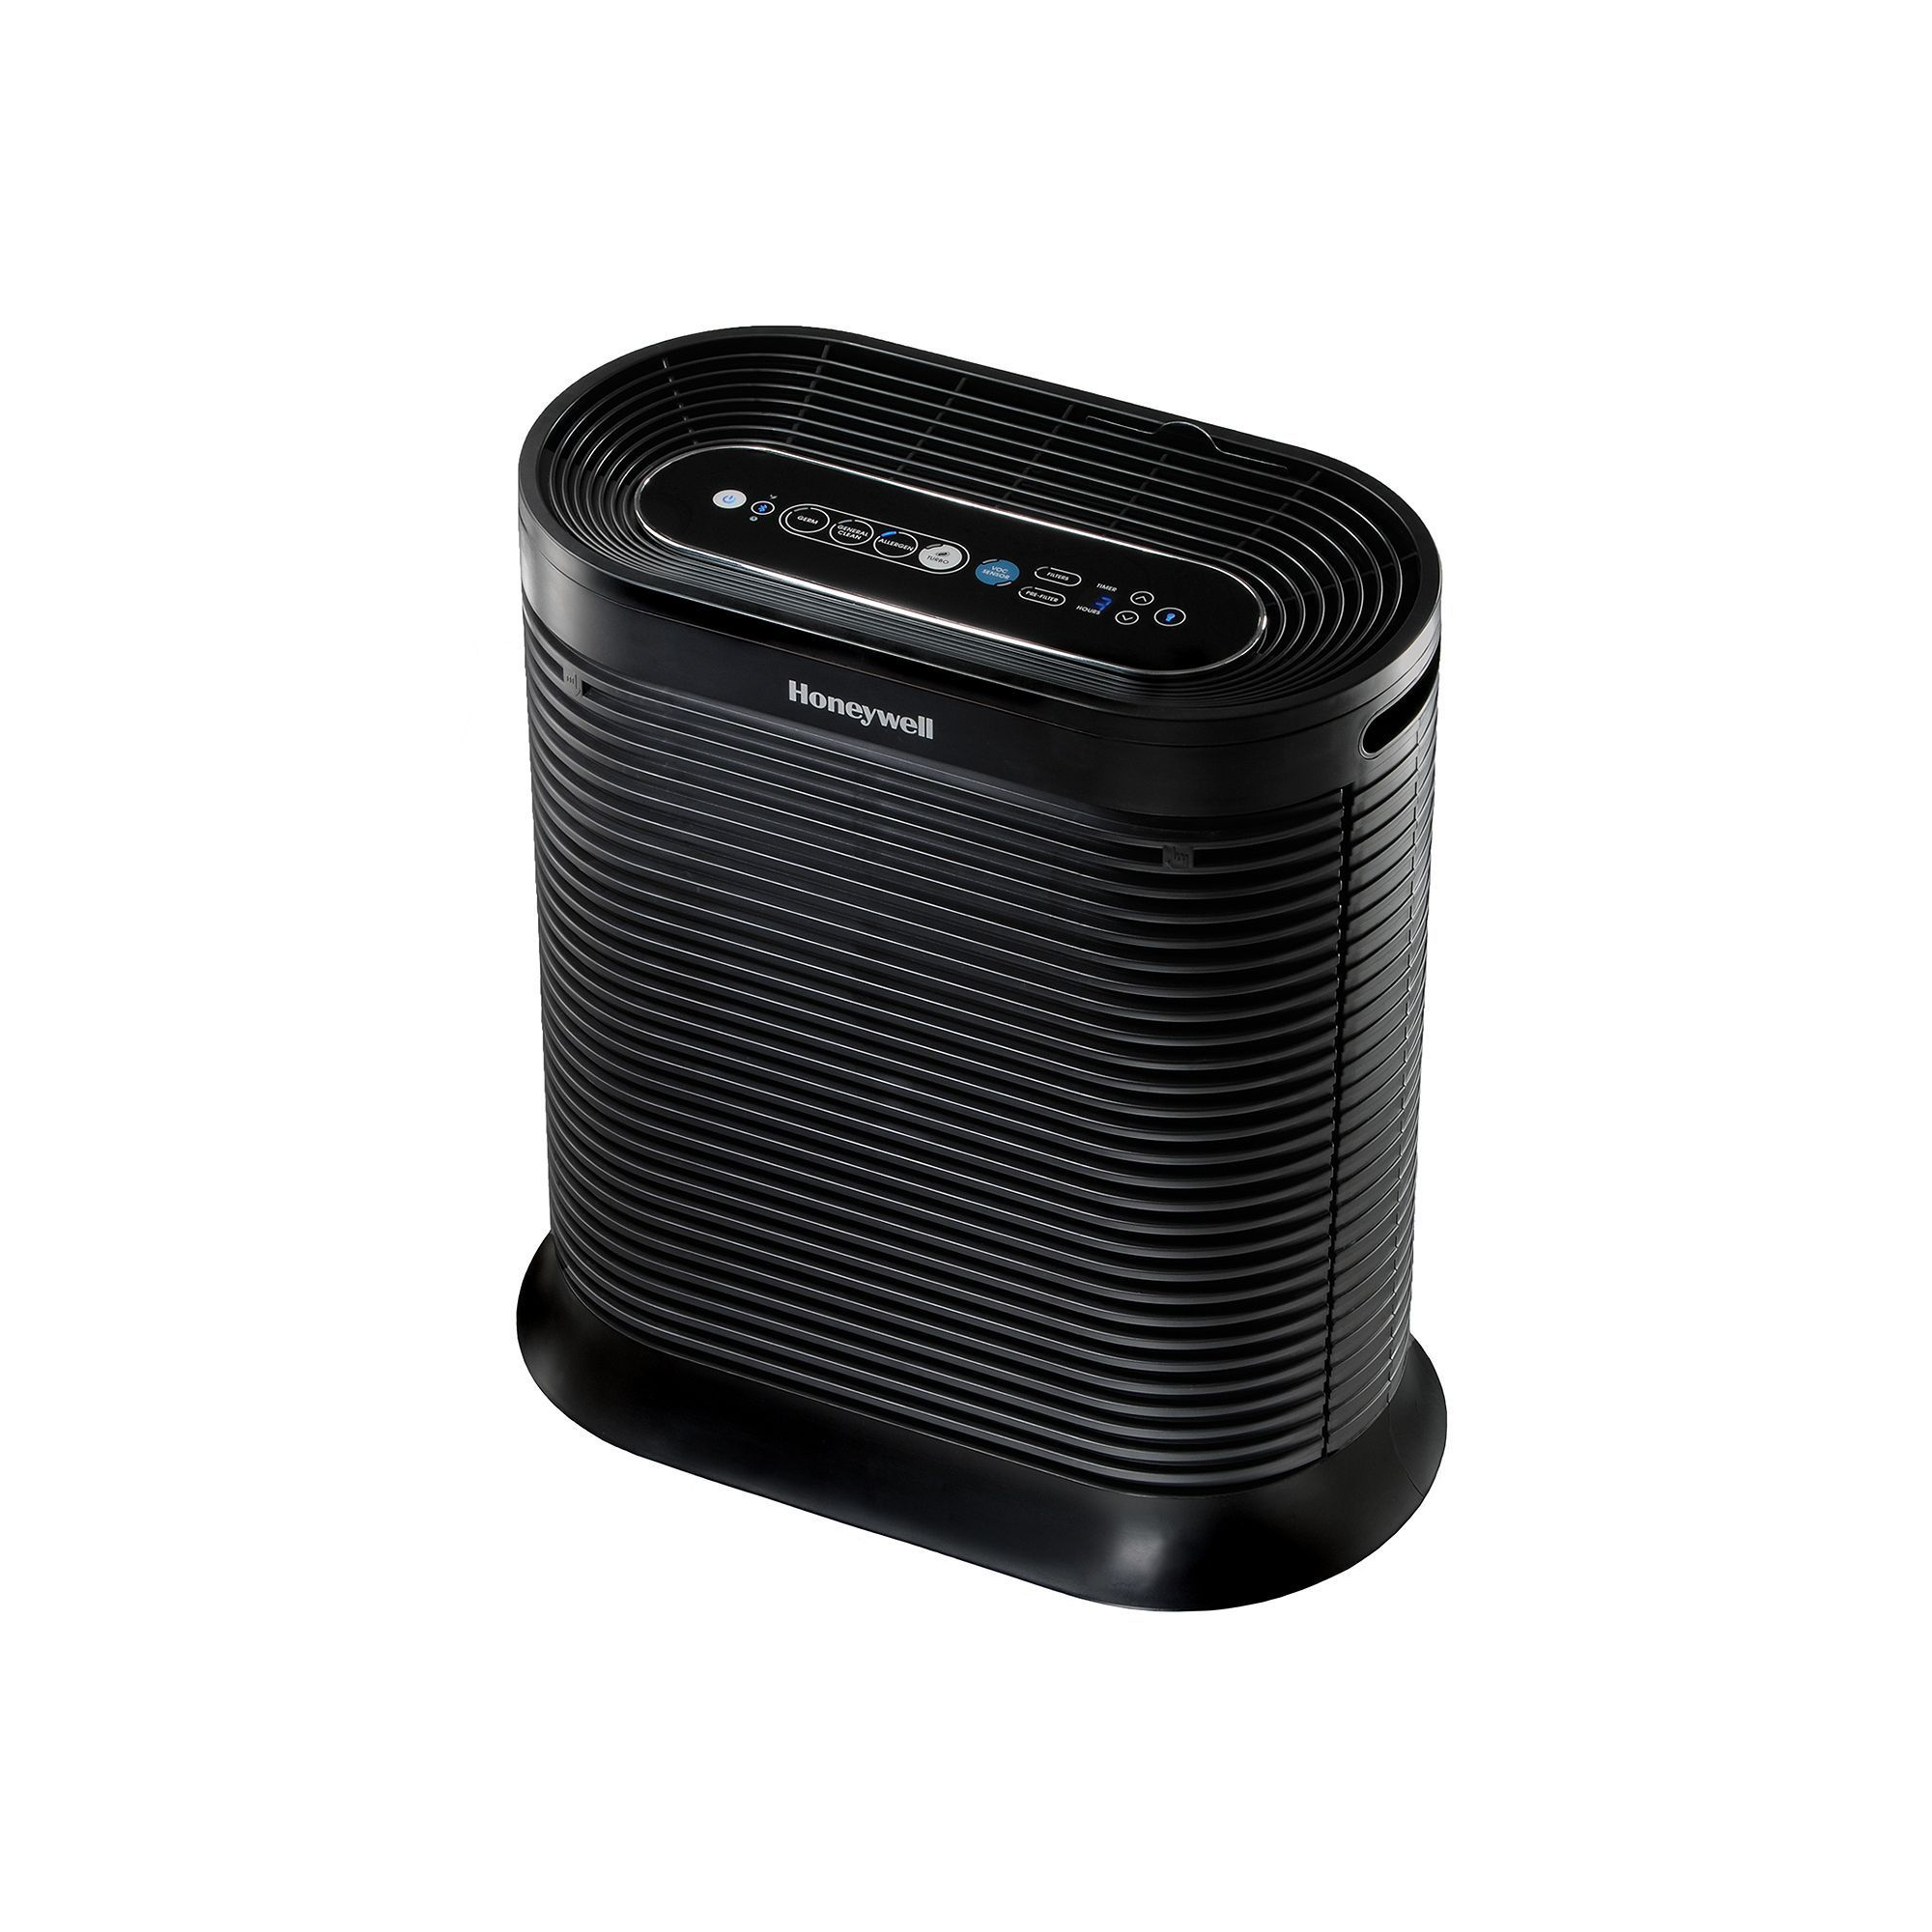 Honeywell True HEPA Bluetooth Air Purifier Air purifier